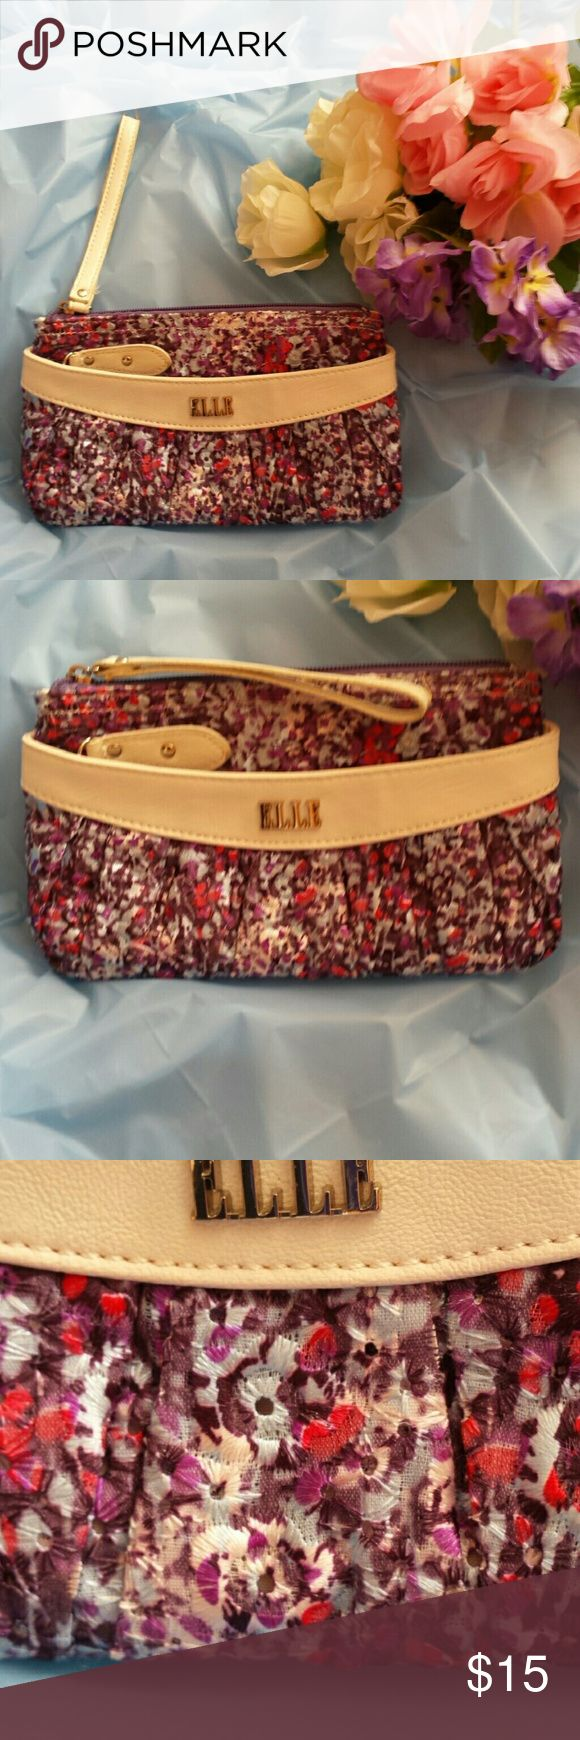 Elle Wristlet Pretty Elle wristlet with one zip pocket on the front and one pocket on the back. Pretty dappled print flowers in colors of purple, hot pink, ivory and mauve. Inside is another zip pocket, a second non zip pocket and 6 slots for credit cards and IDs. Brand new without tags. Elle Bags Clutches & Wristlets